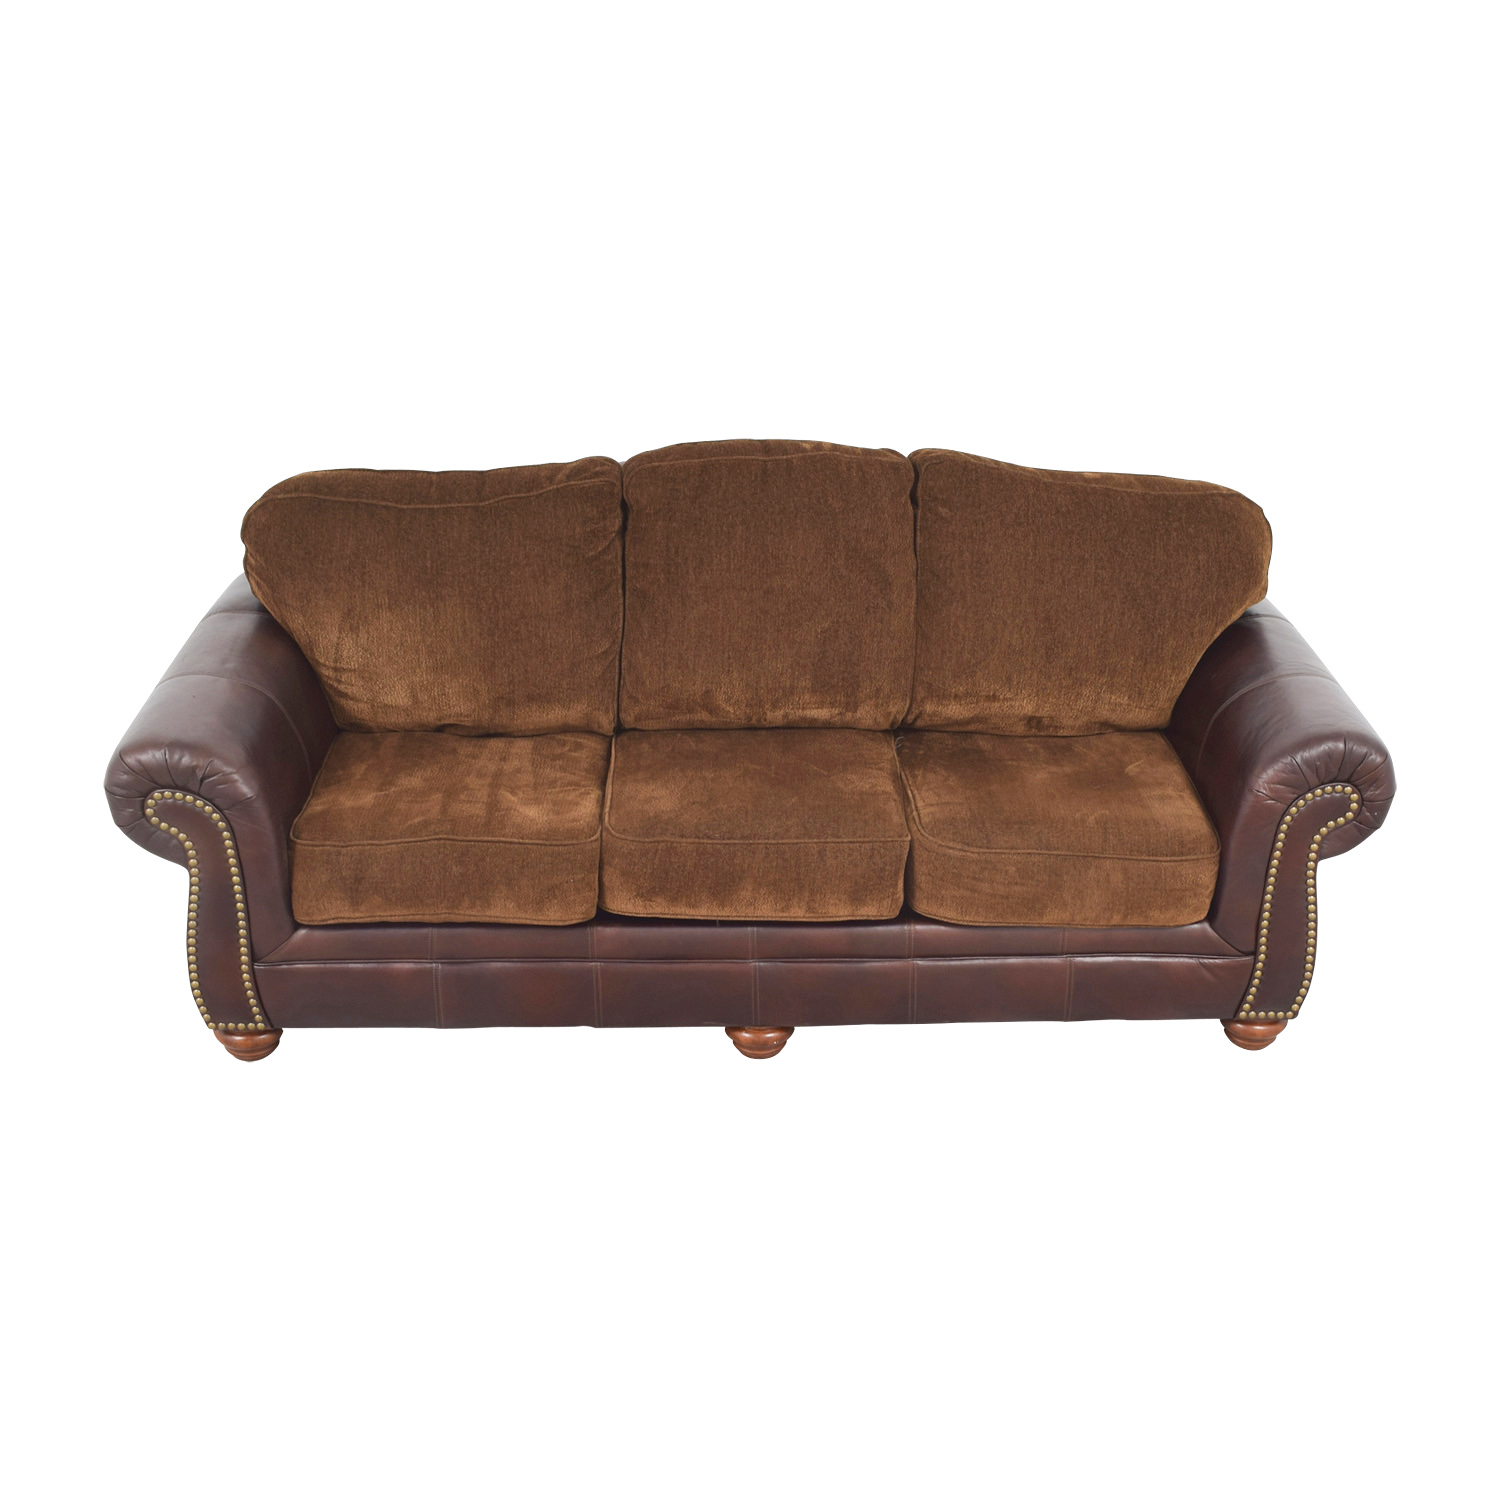 Simmons Simmons Sofa with Leather Arms coupon